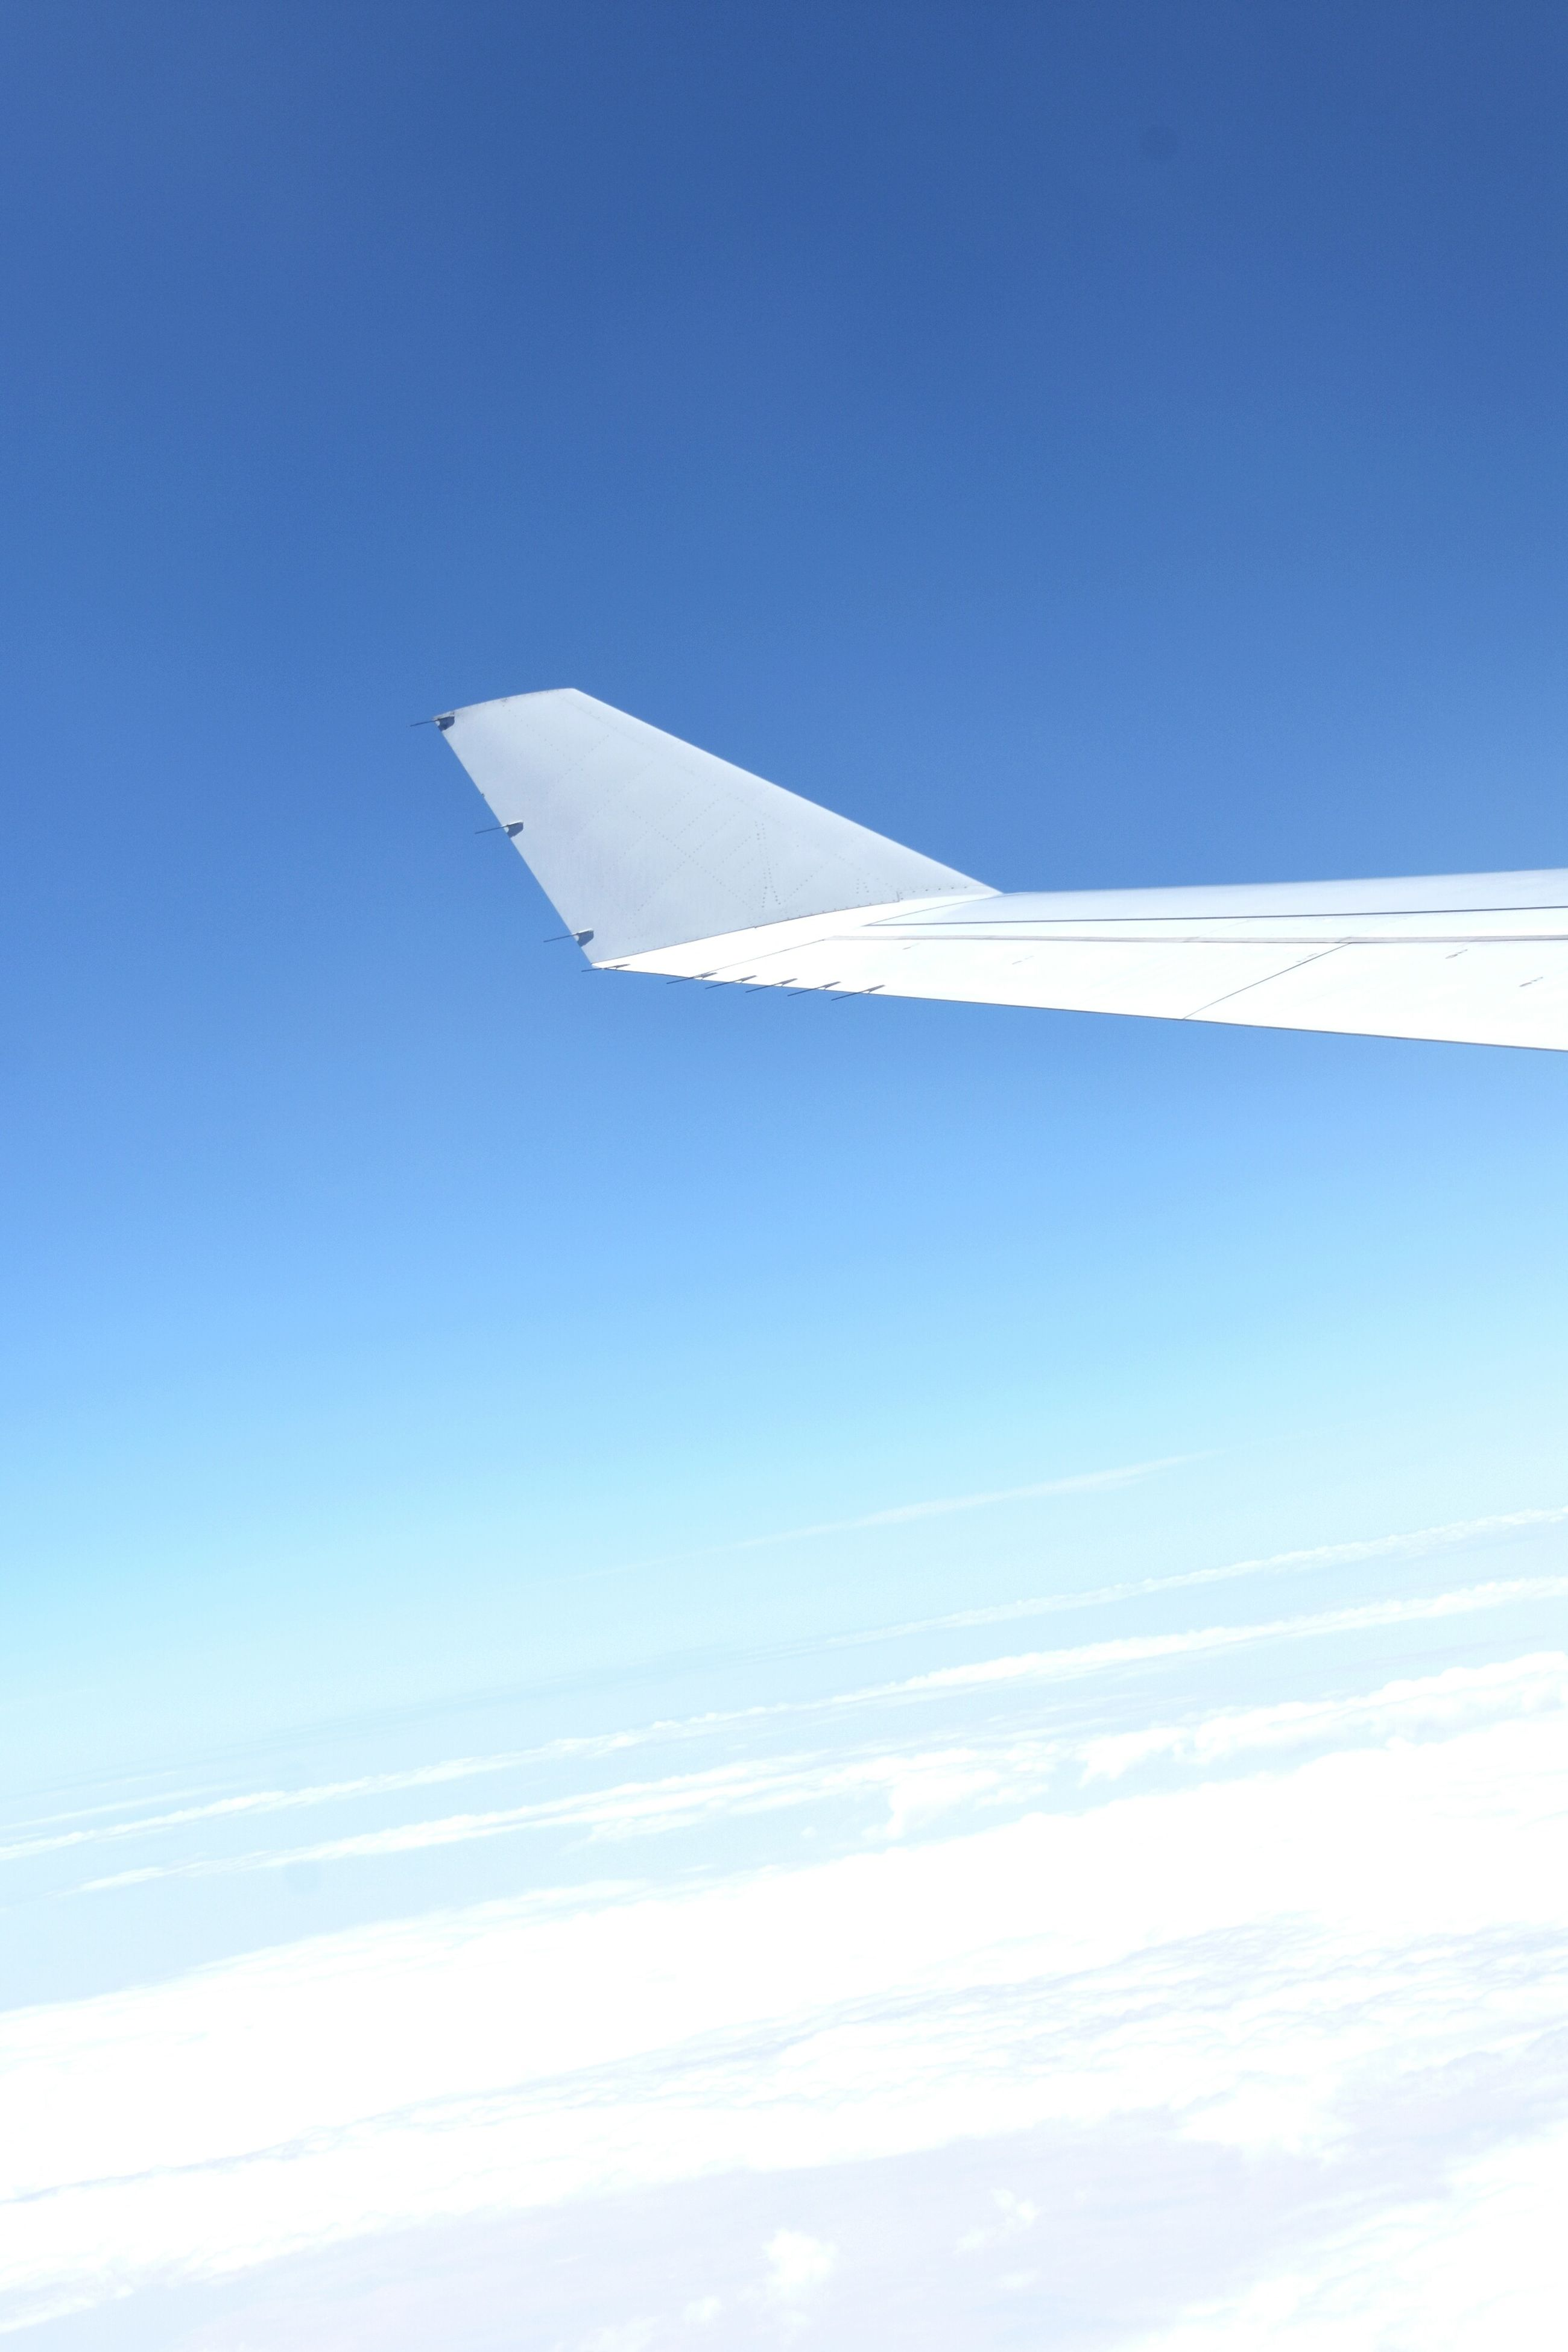 airplane, sky, blue, cloud - sky, flying, no people, air vehicle, low angle view, day, outdoors, nature, beauty in nature, airplane wing